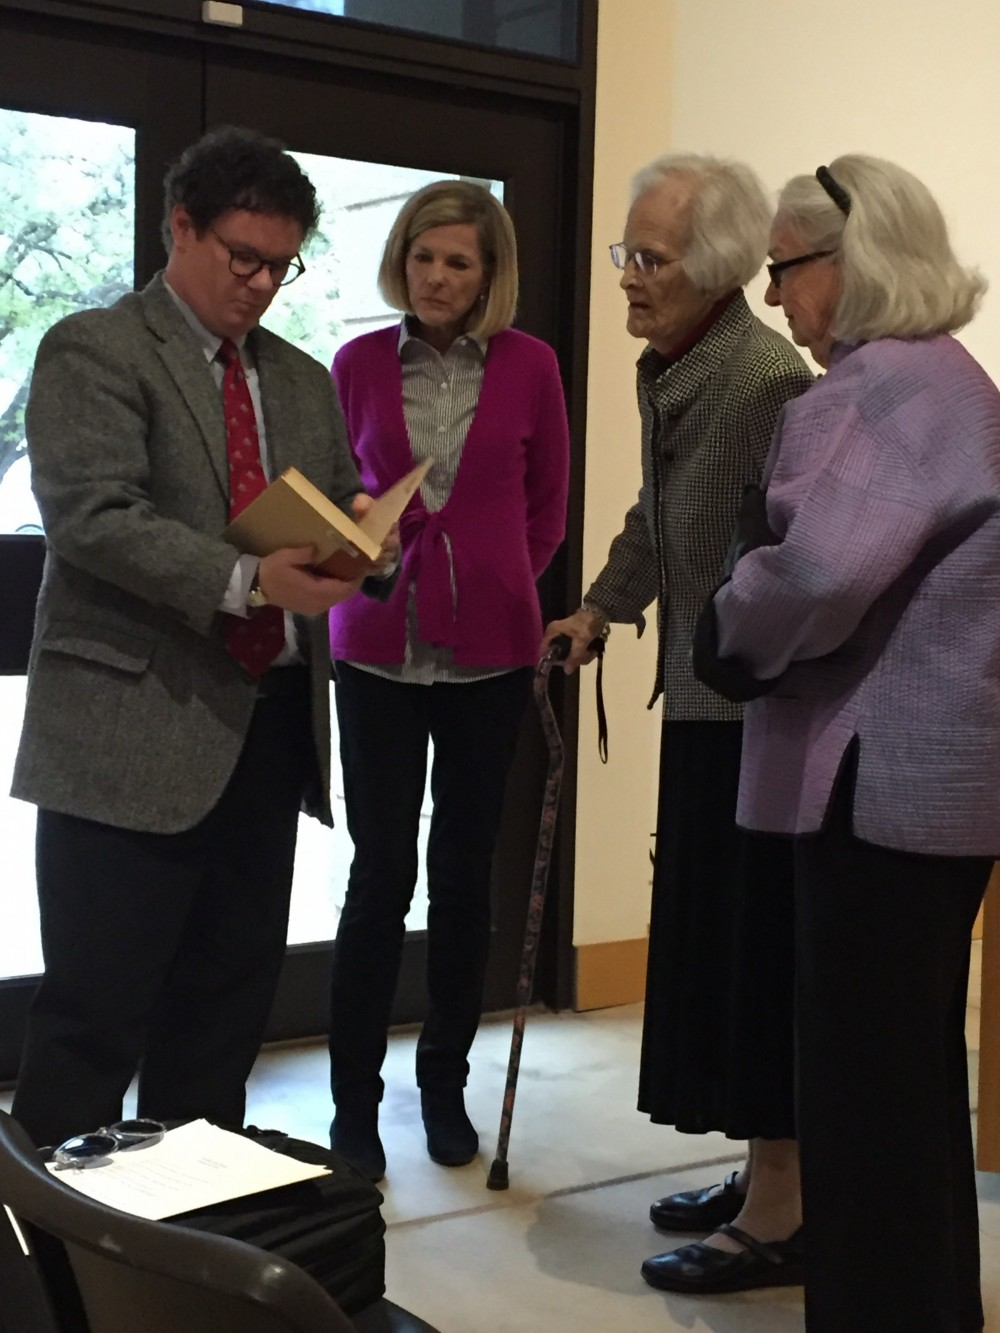 Jason discussing a copy of Interwoven with members of the Reynolds-Matthews family